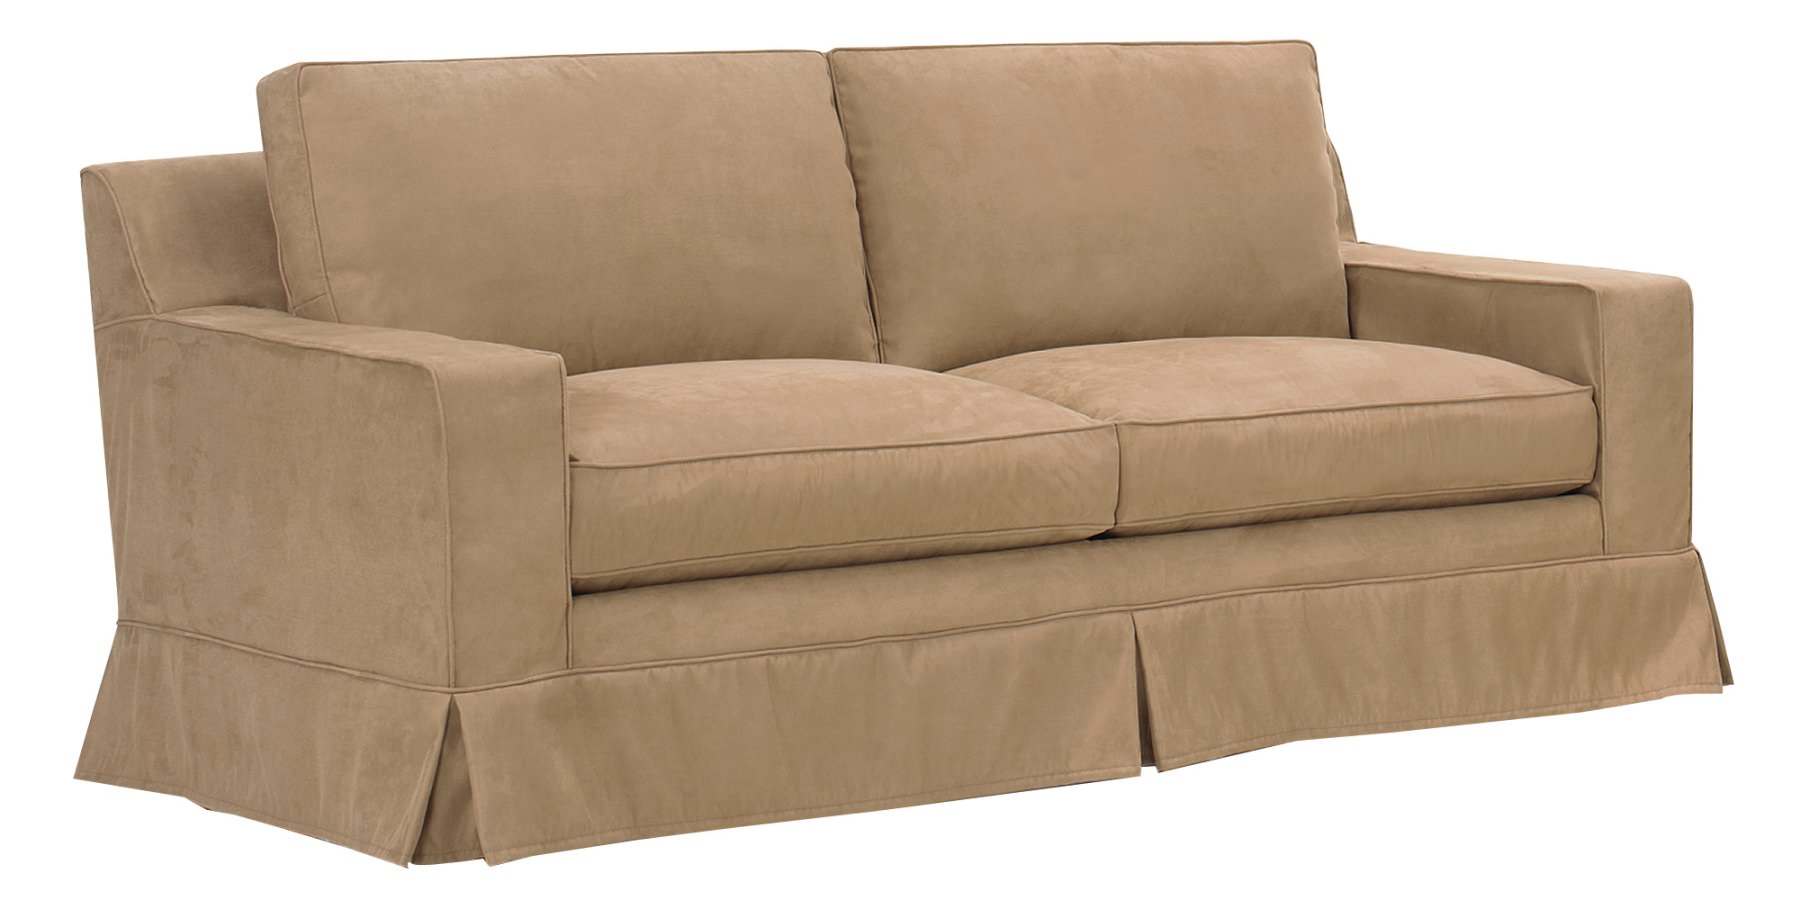 Slipcover Sleeper Sofa with Down Filled Couch Cushions